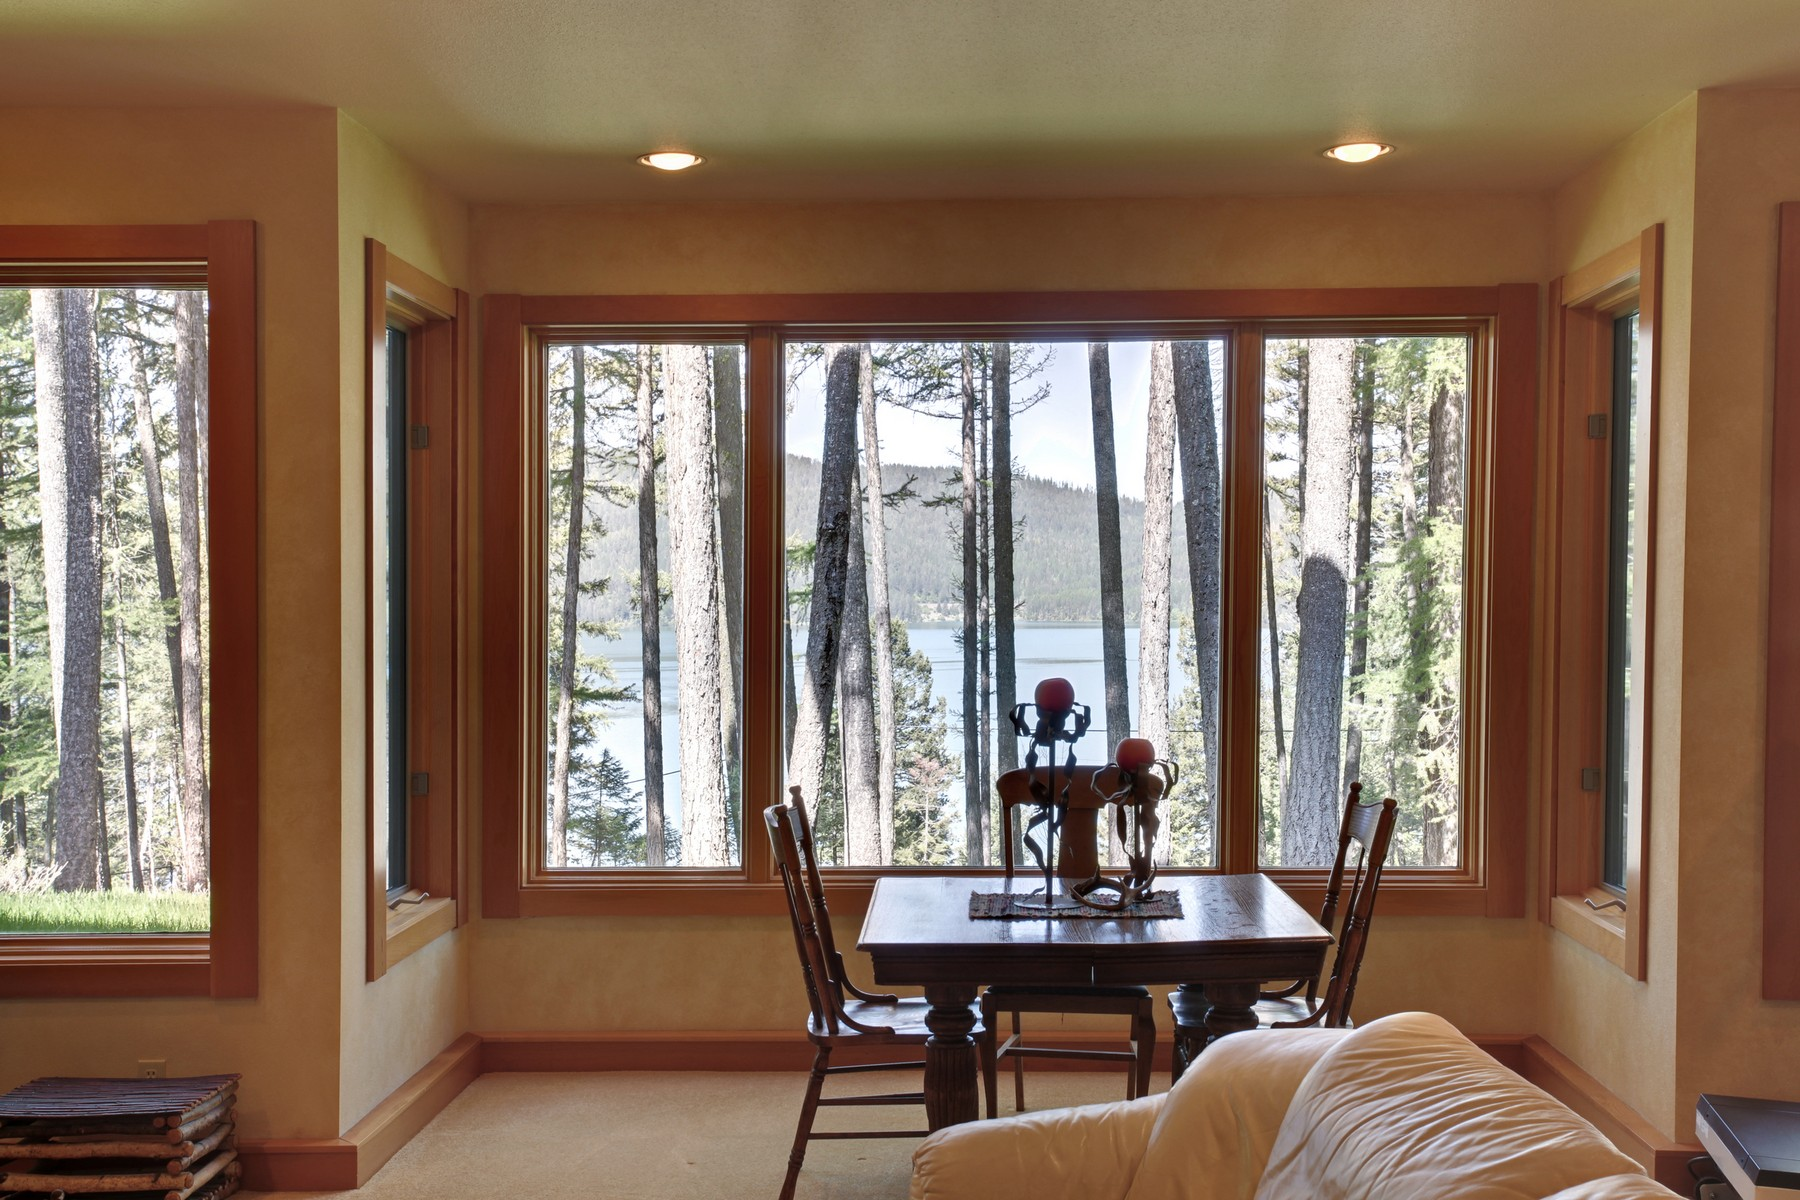 Additional photo for property listing at 2385 Mountain Shadows Dr , Whitefish, MT 59937 2385  Mountain Shadows Dr Whitefish, Montana 59937 United States